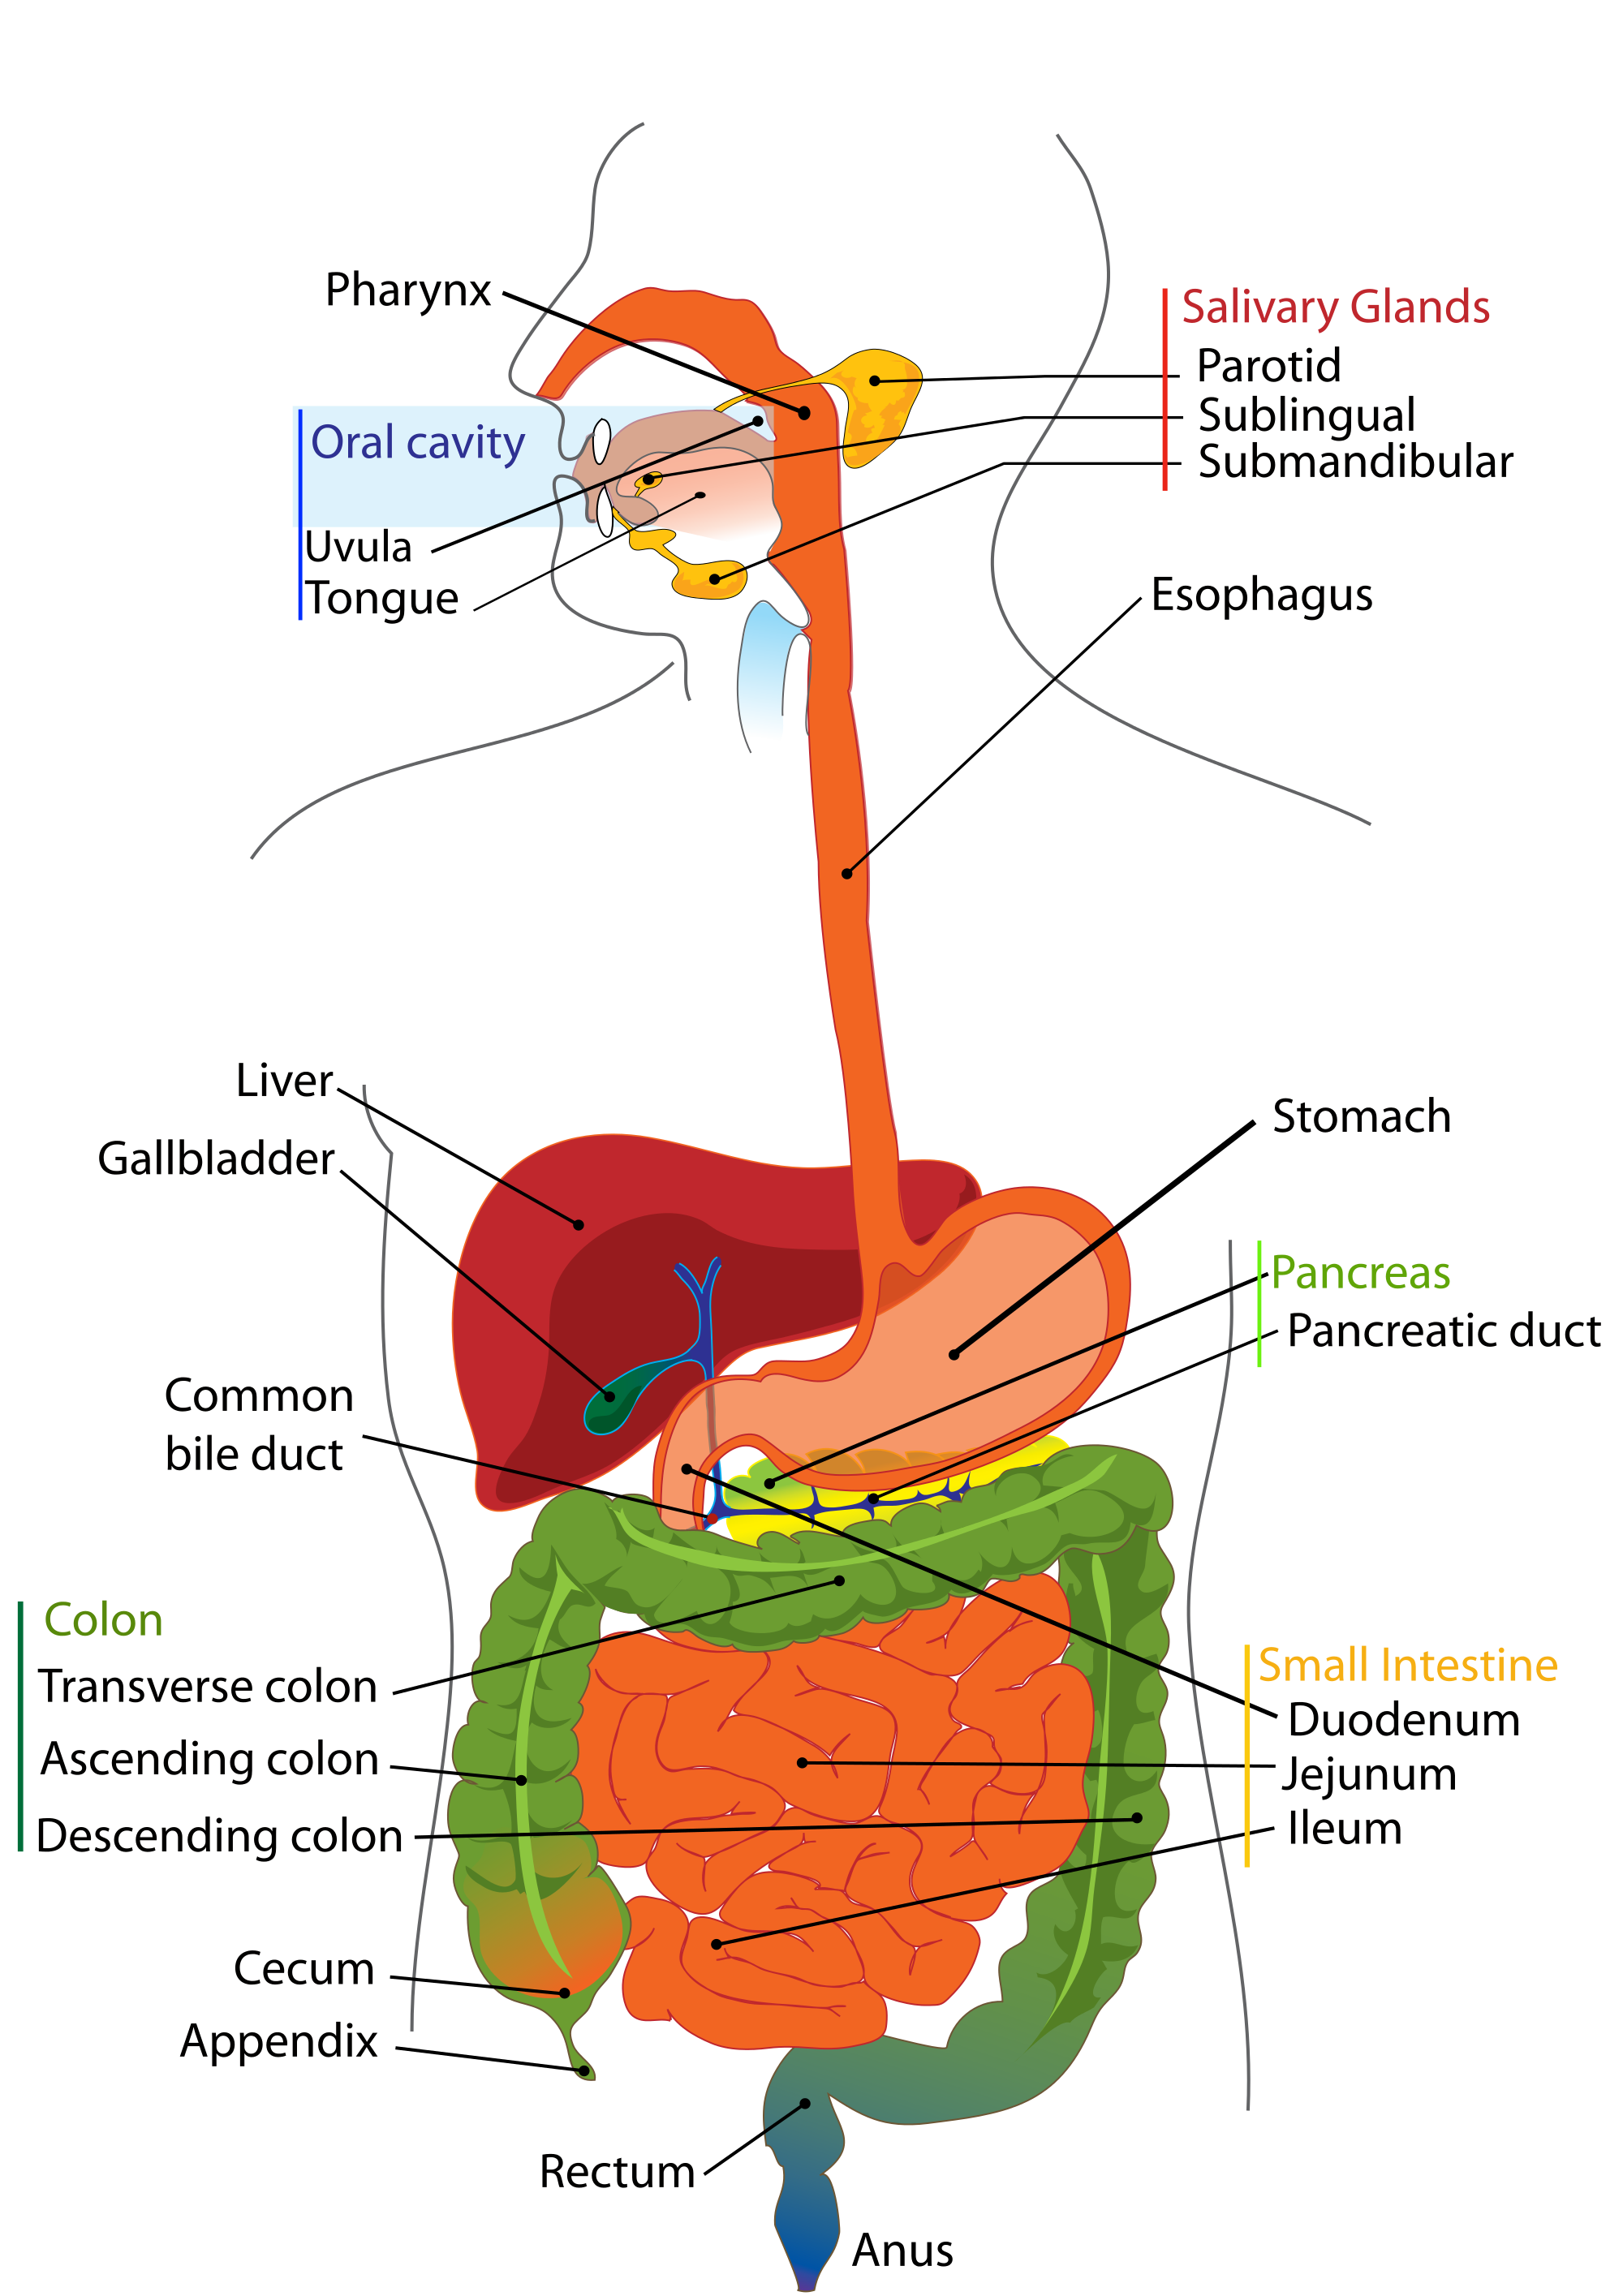 Digestive system structure of digestive system structure of digestive system pooptronica